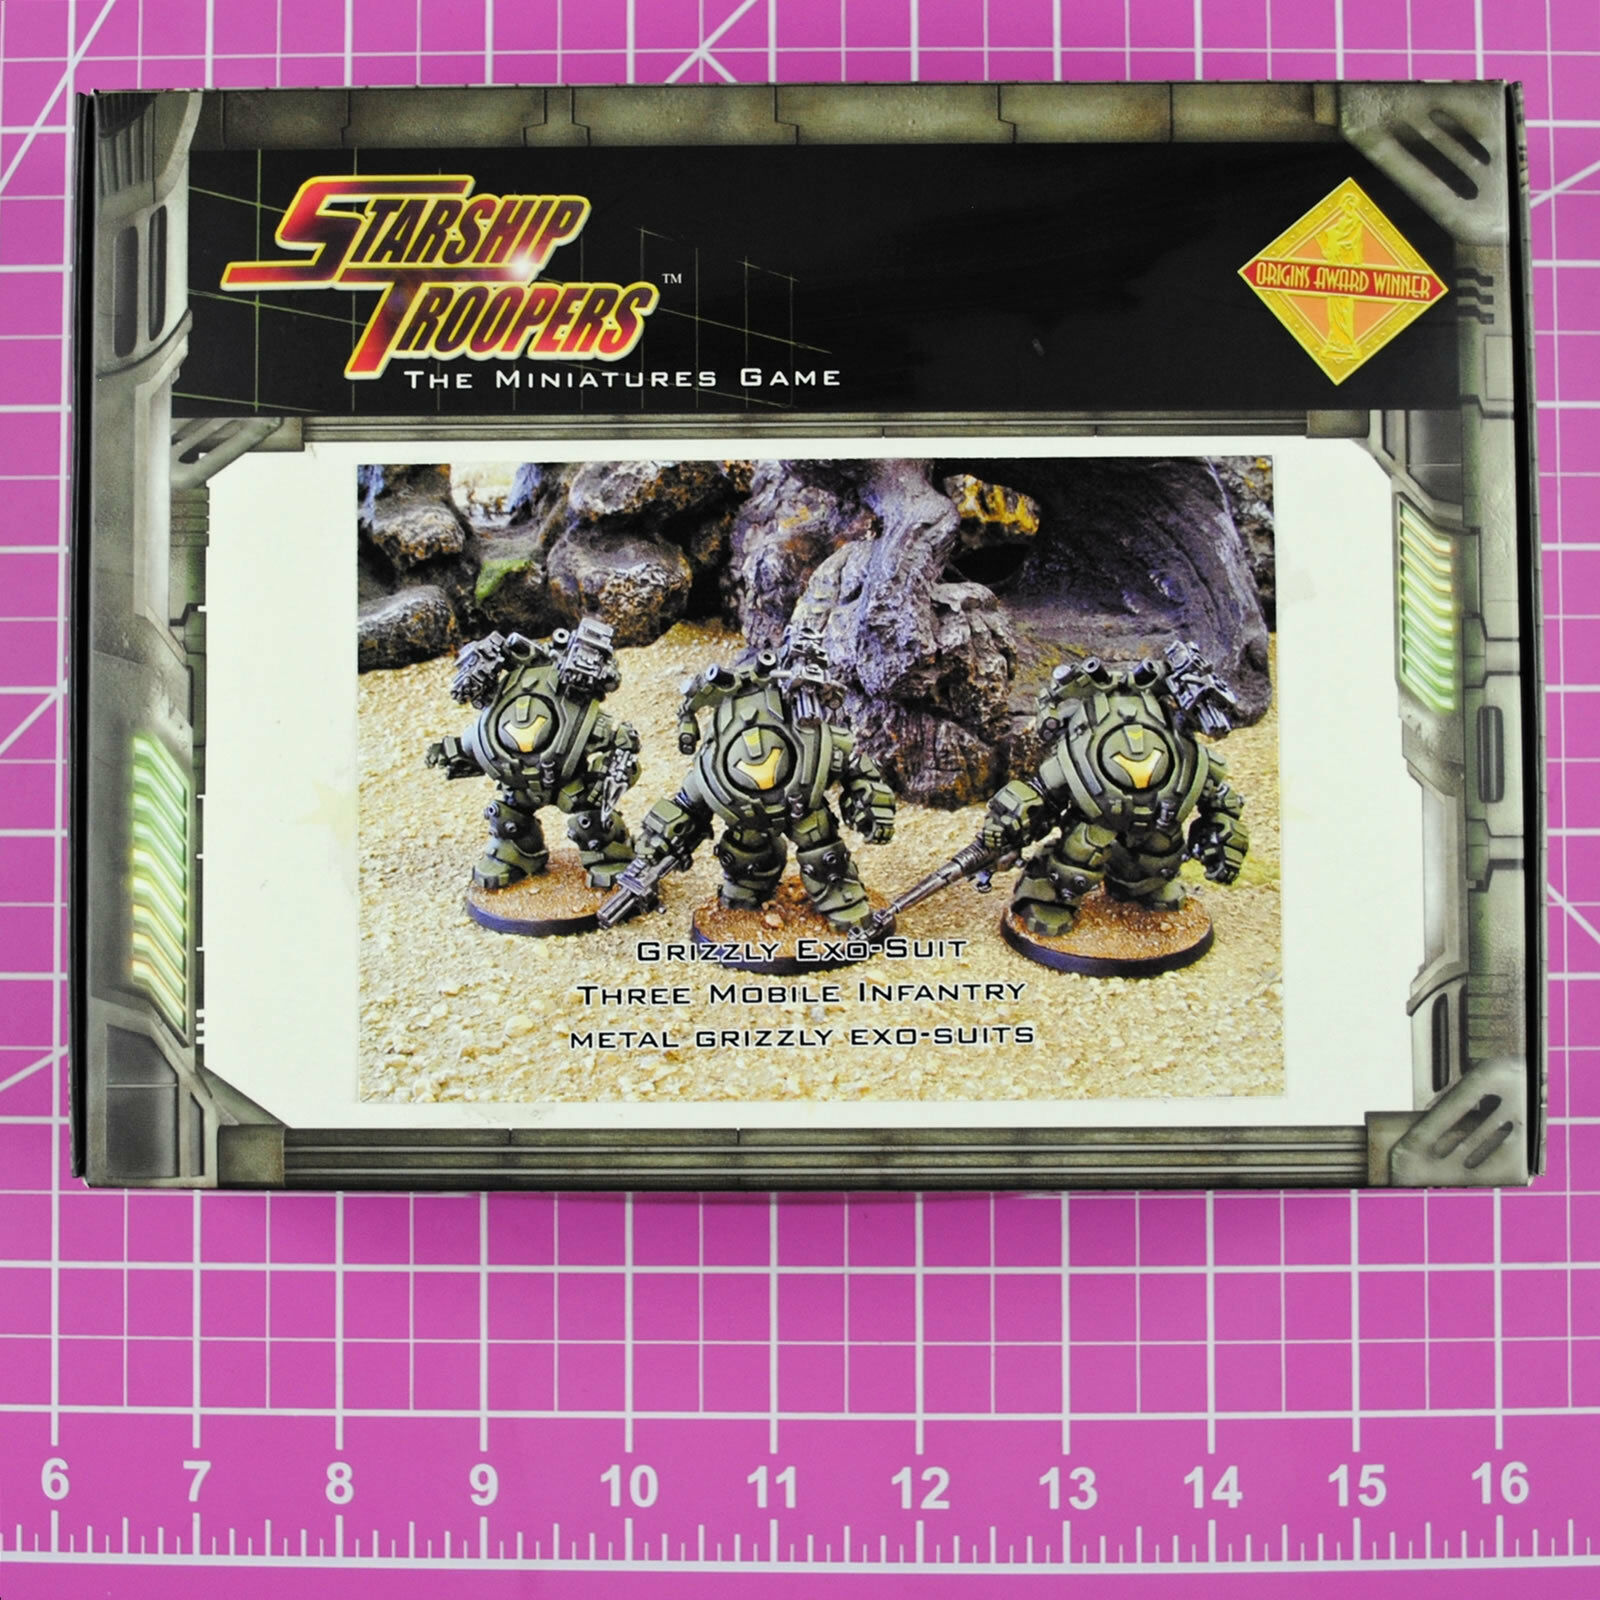 Starship troopers grizzly exo - anzug - truppe, die mobile infanterie - mungo selten & ich